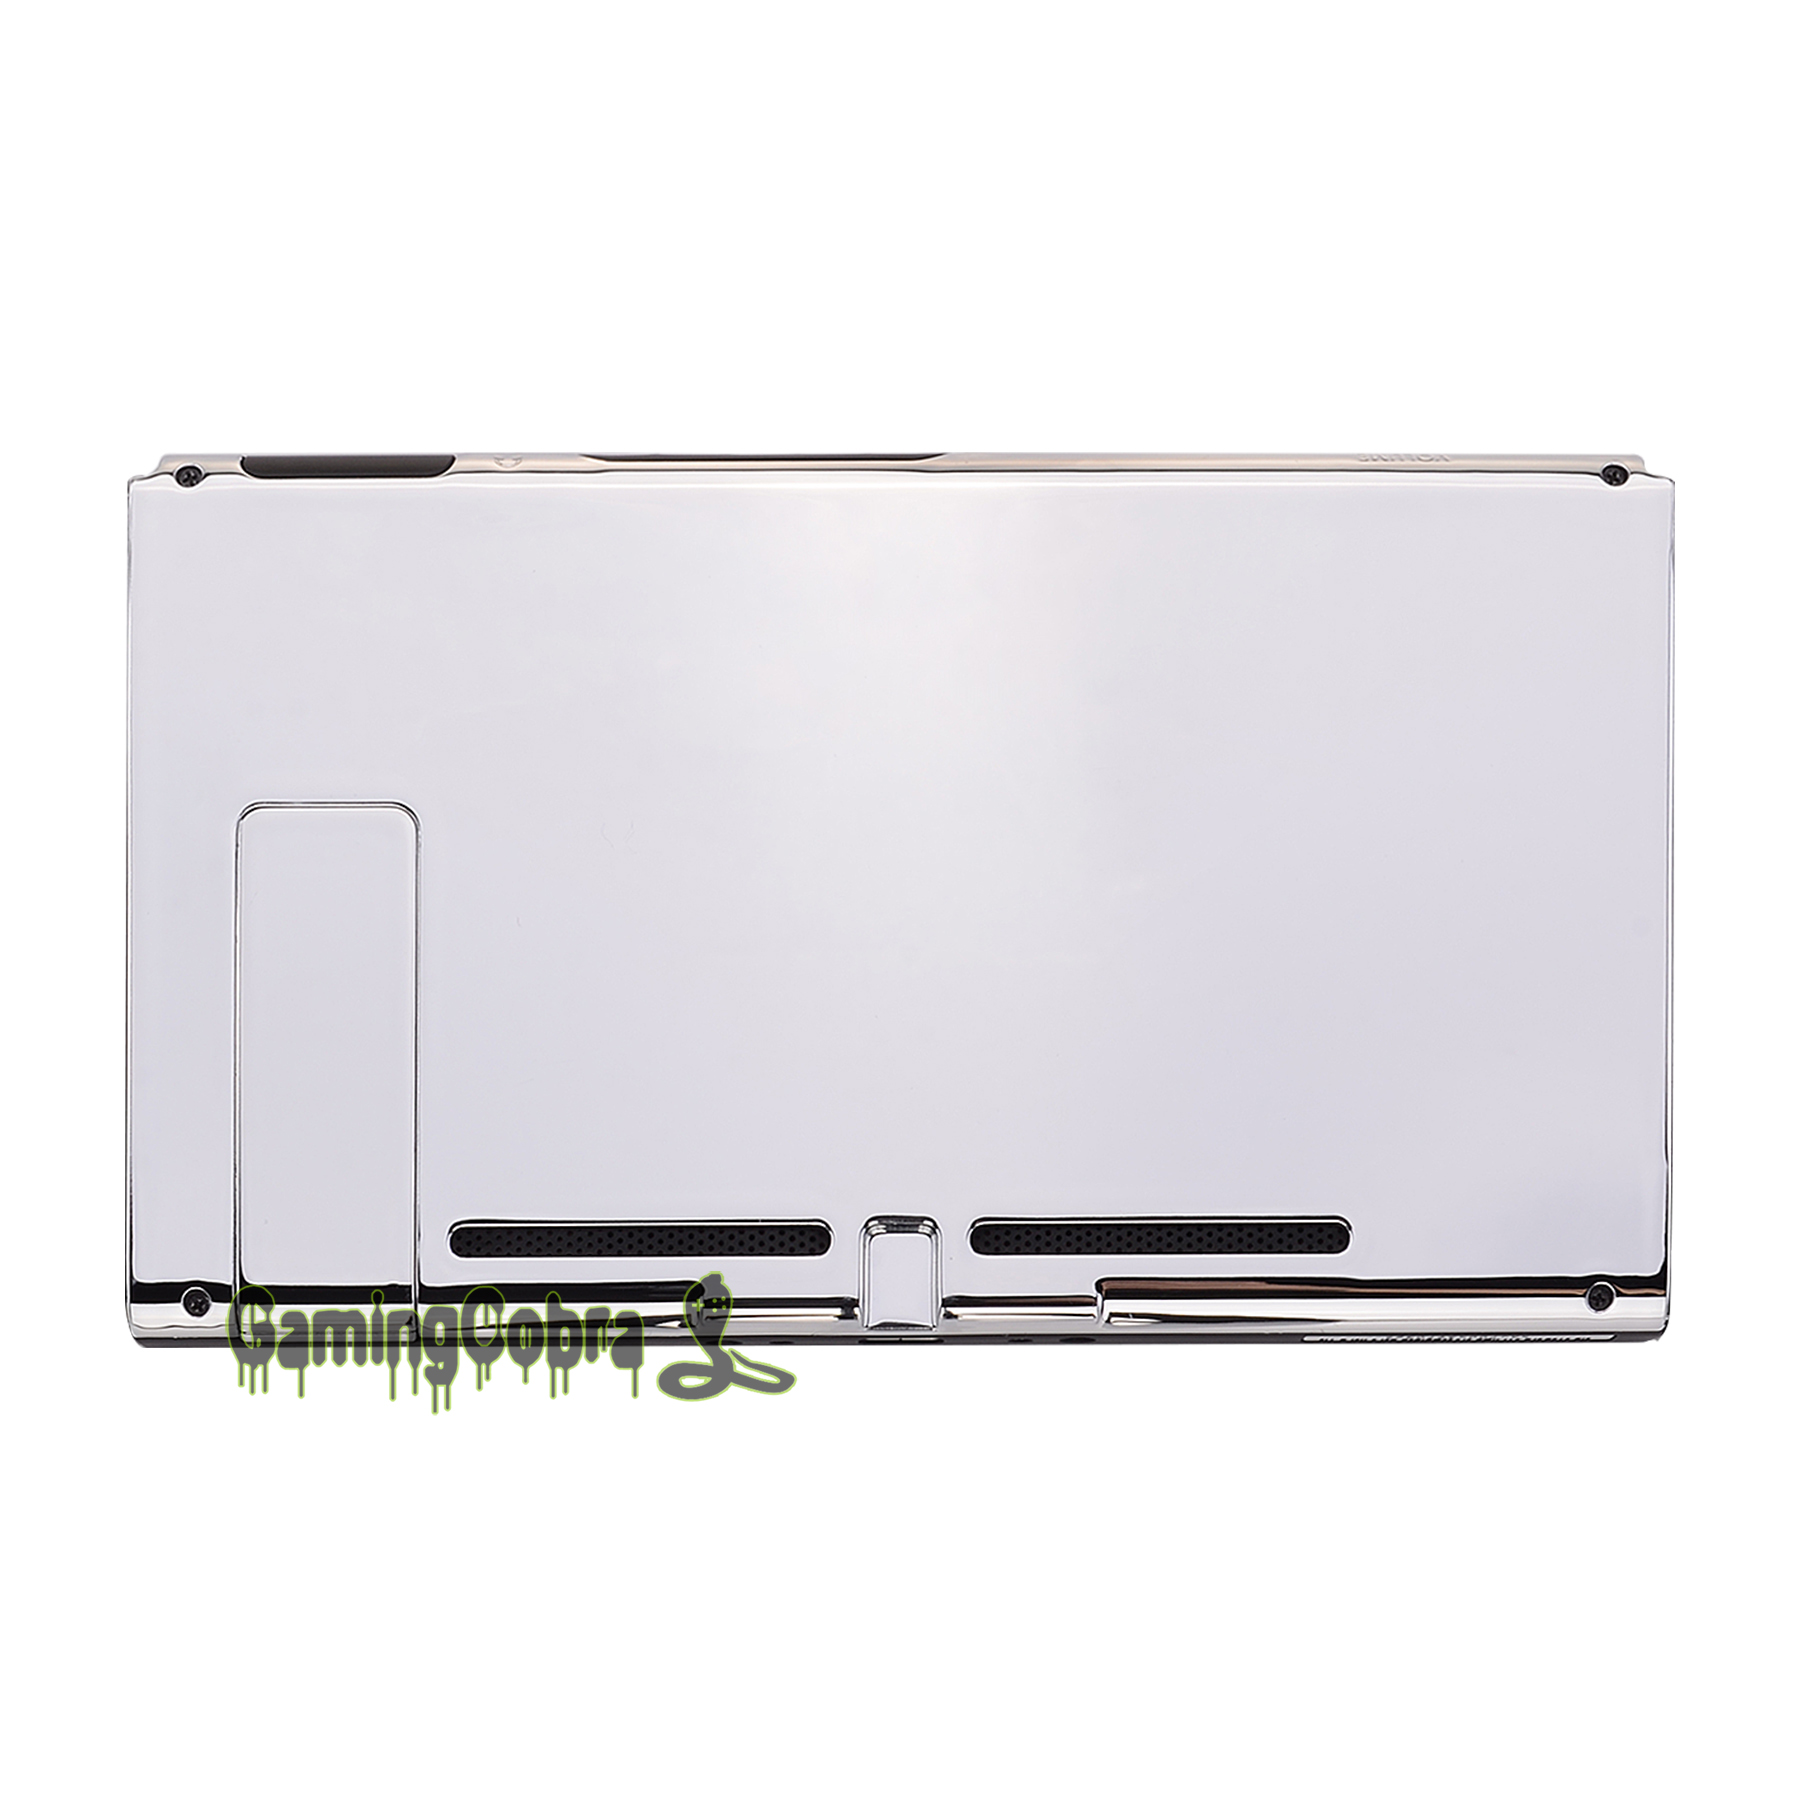 Custom Chrome Silver Console Back Plate DIY Replacement Housing Shell Case  for Nintendo Switch Console with Kickstand - ZD402